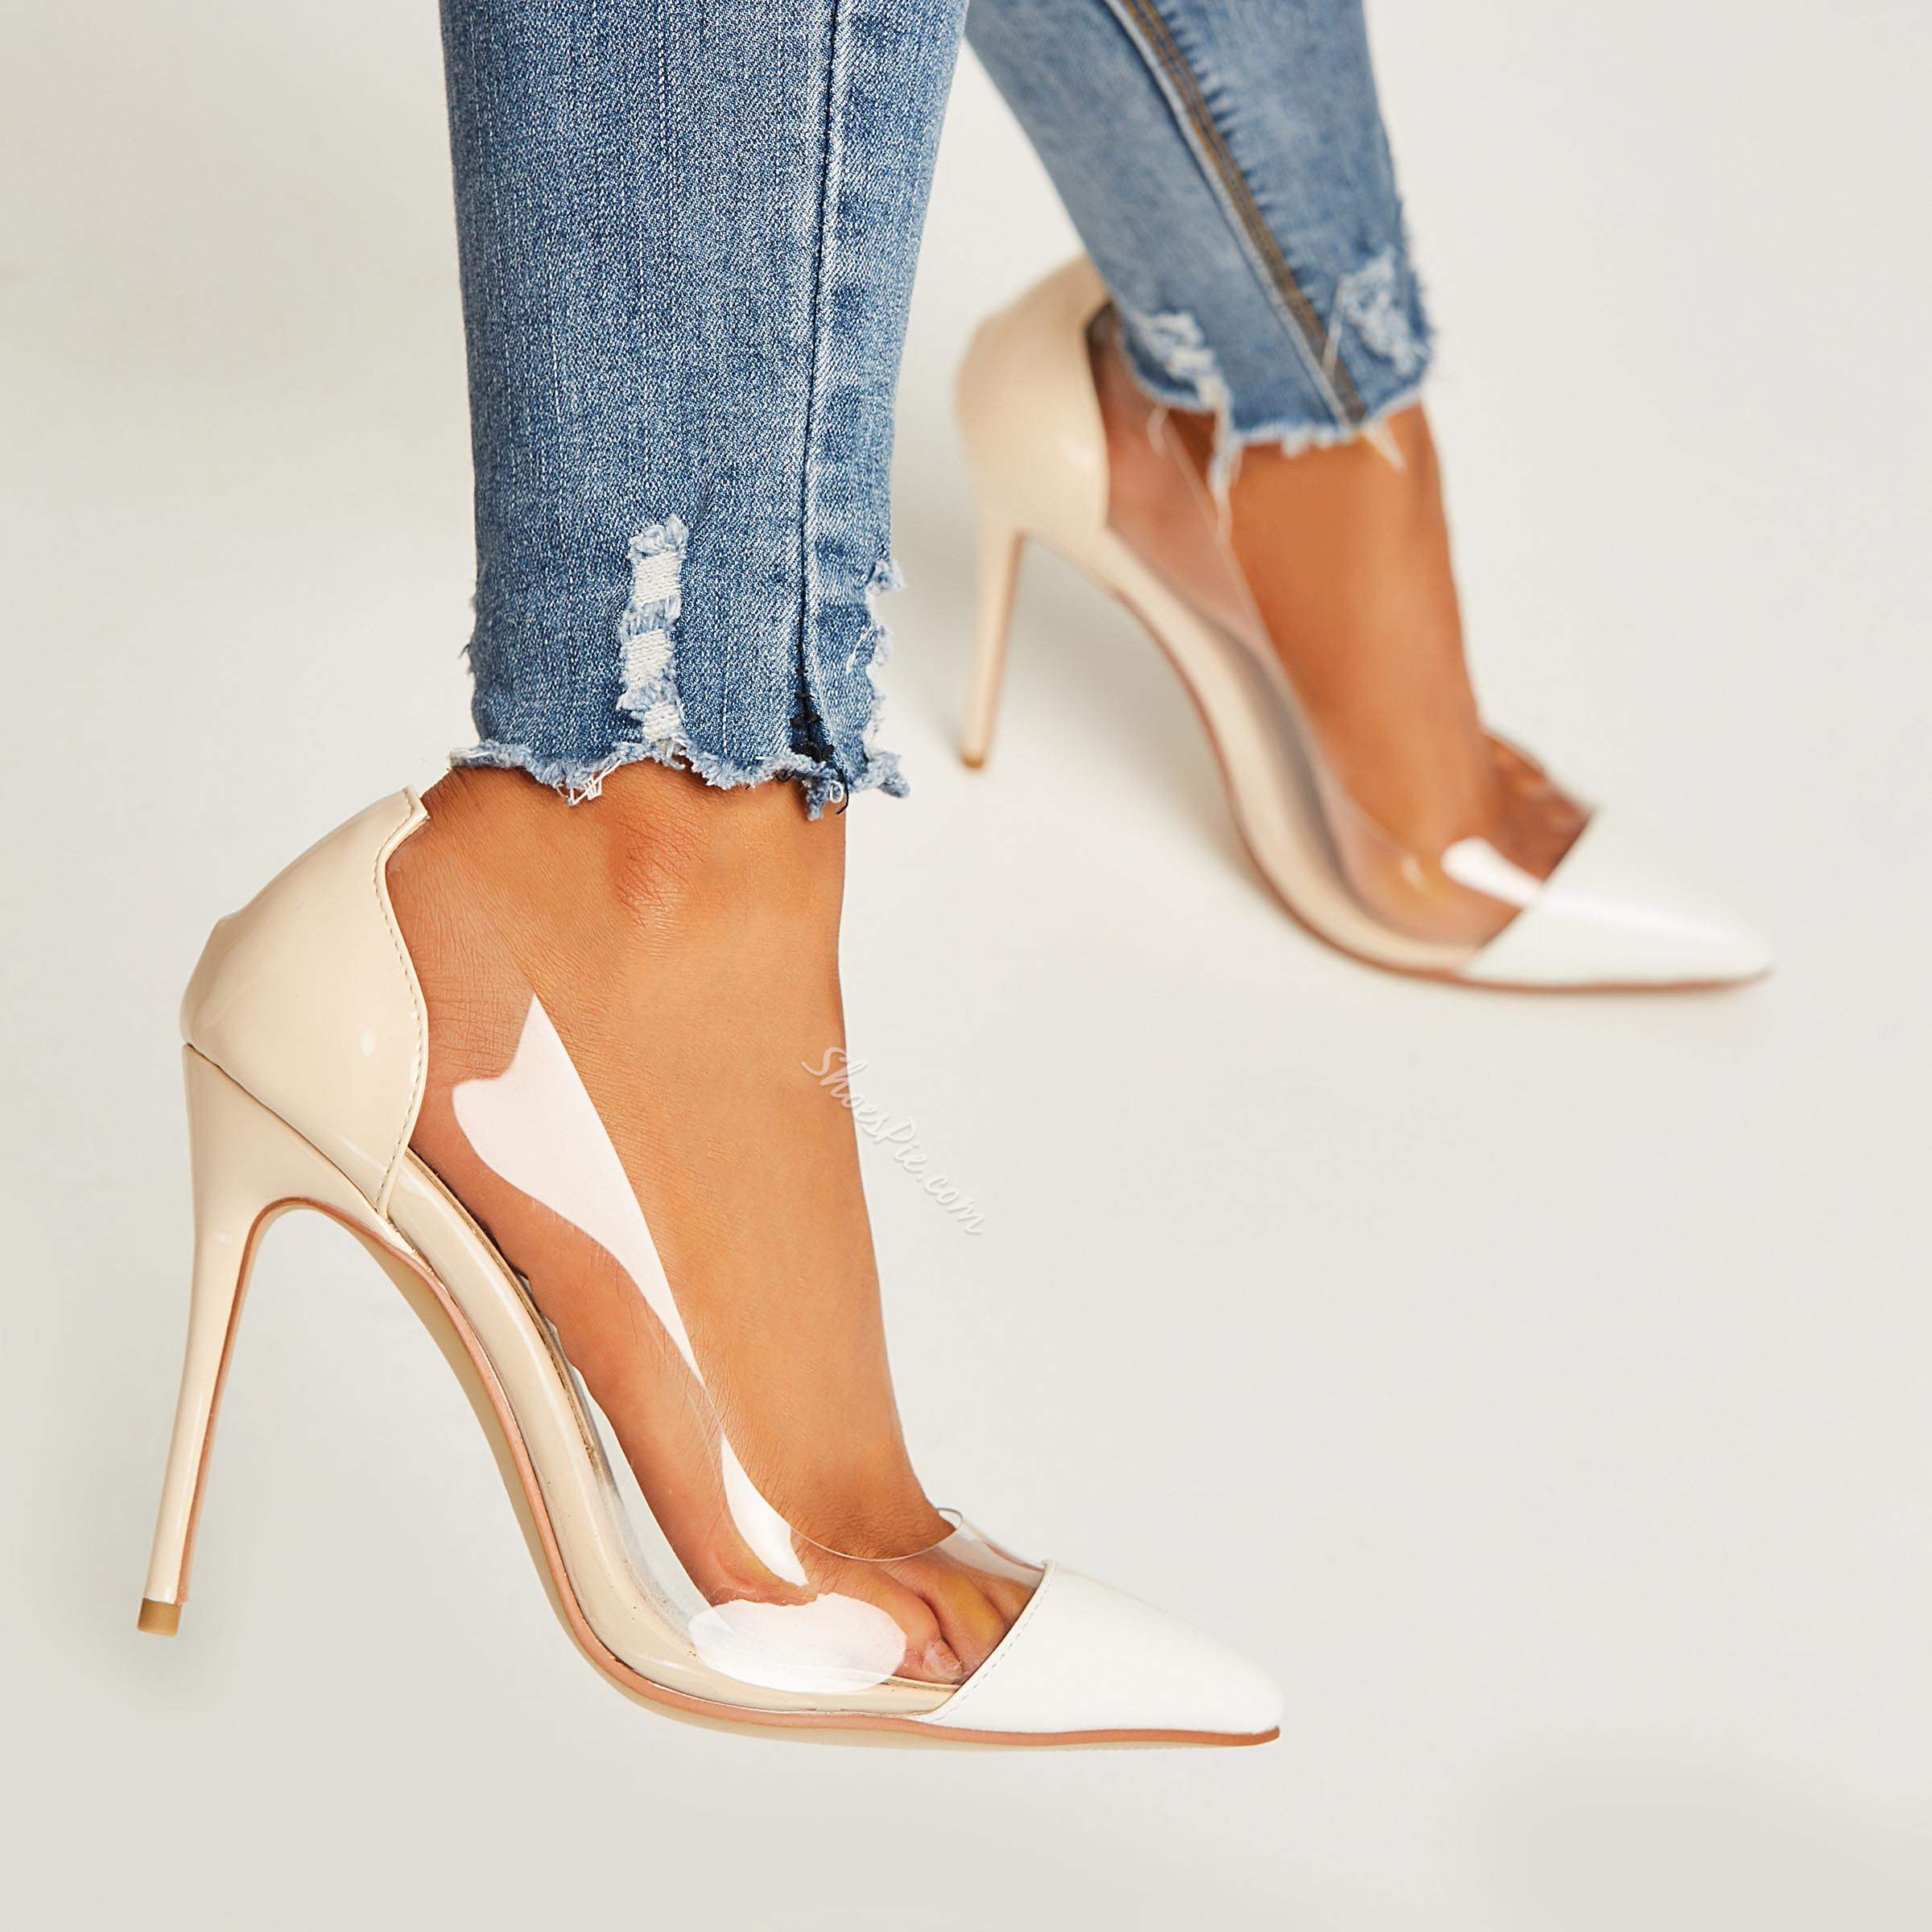 Shoespie Nude Pointed Toe Patchwork Jelly Sexy Stiletto Heels